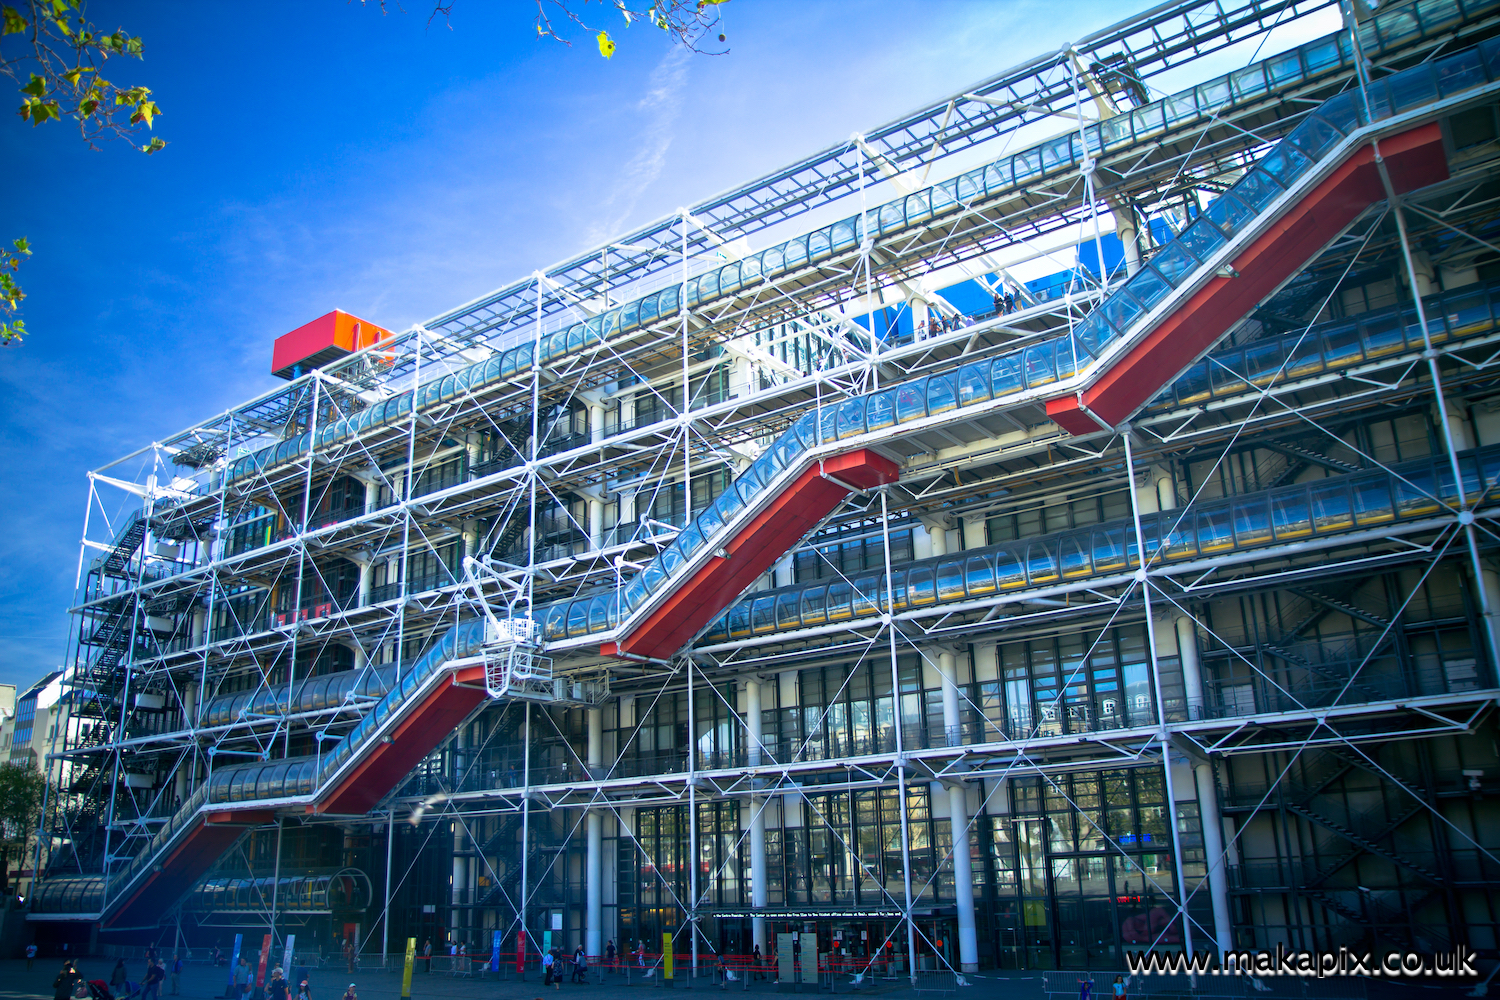 The Centre Pompidou, Paris, France